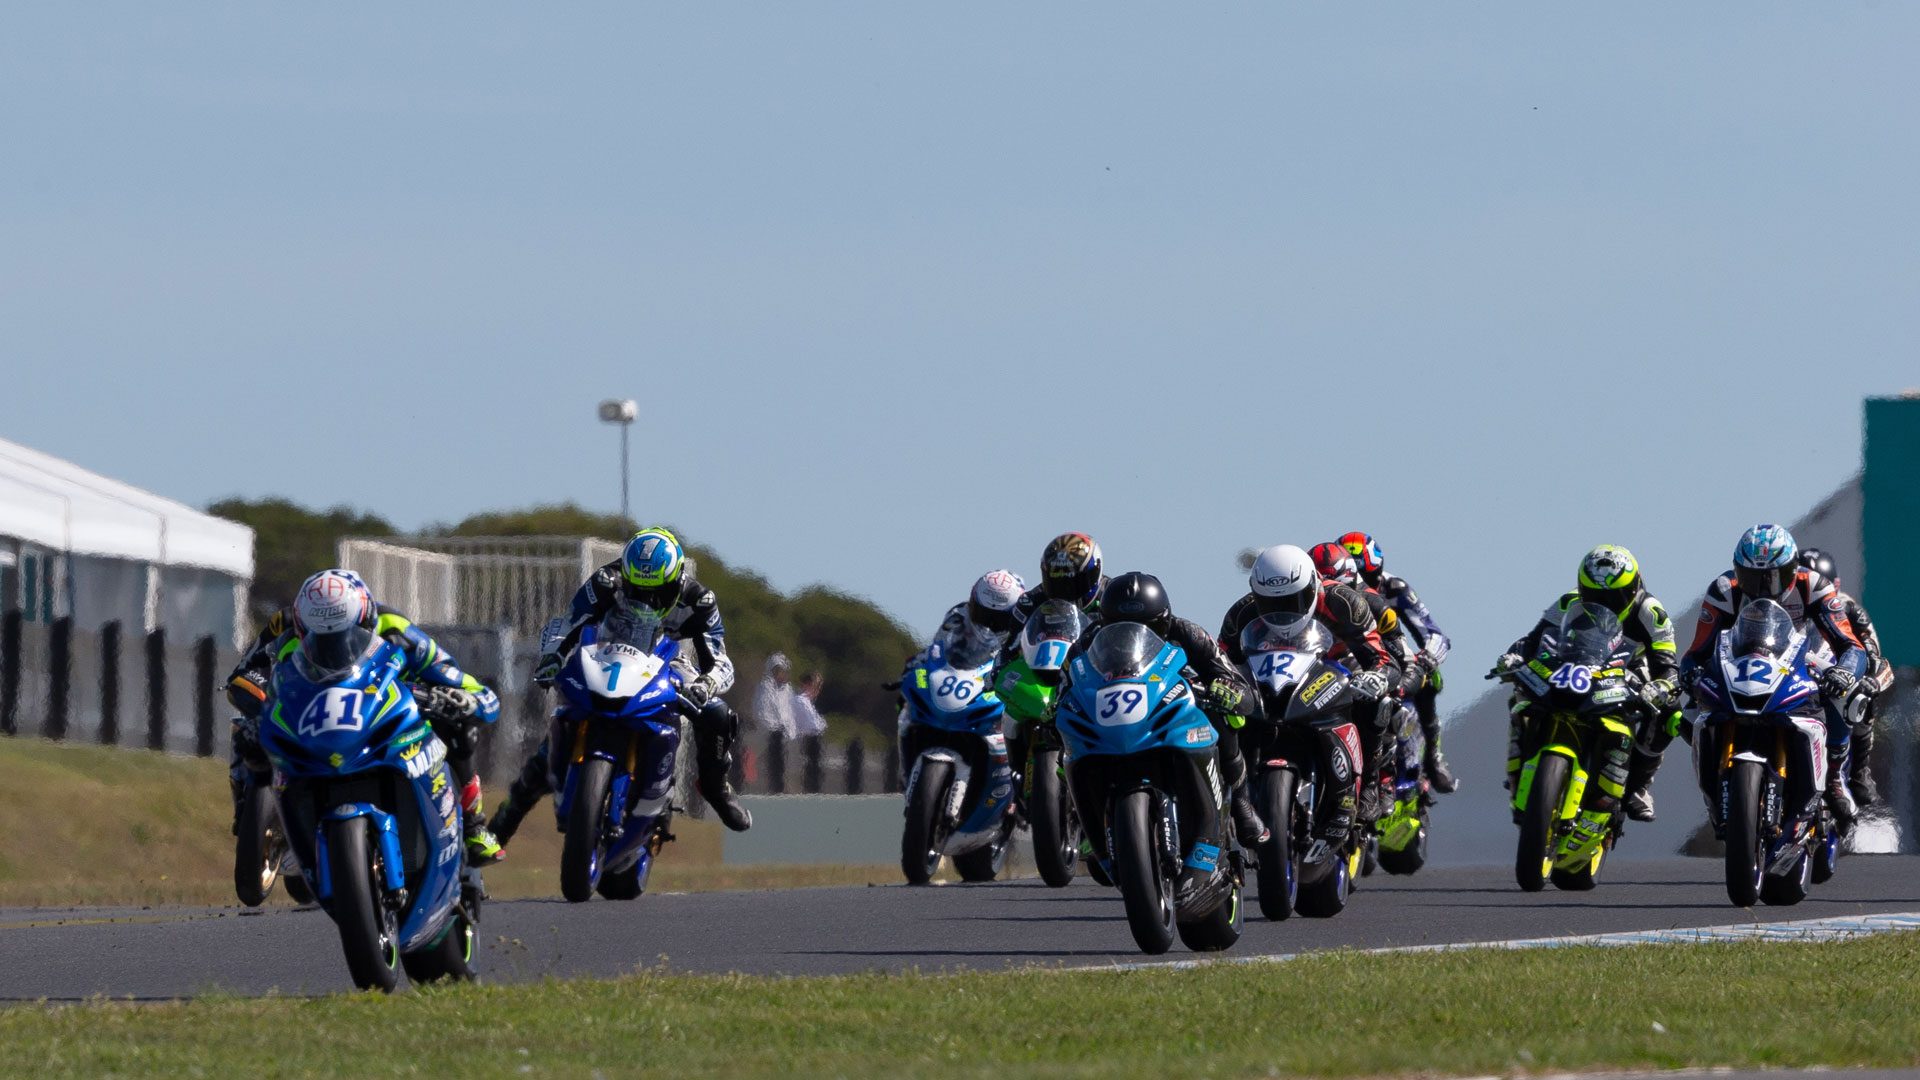 Kawasaki Supersport - Phillip Island Round 7 ASBK 2018 - Image by TBG